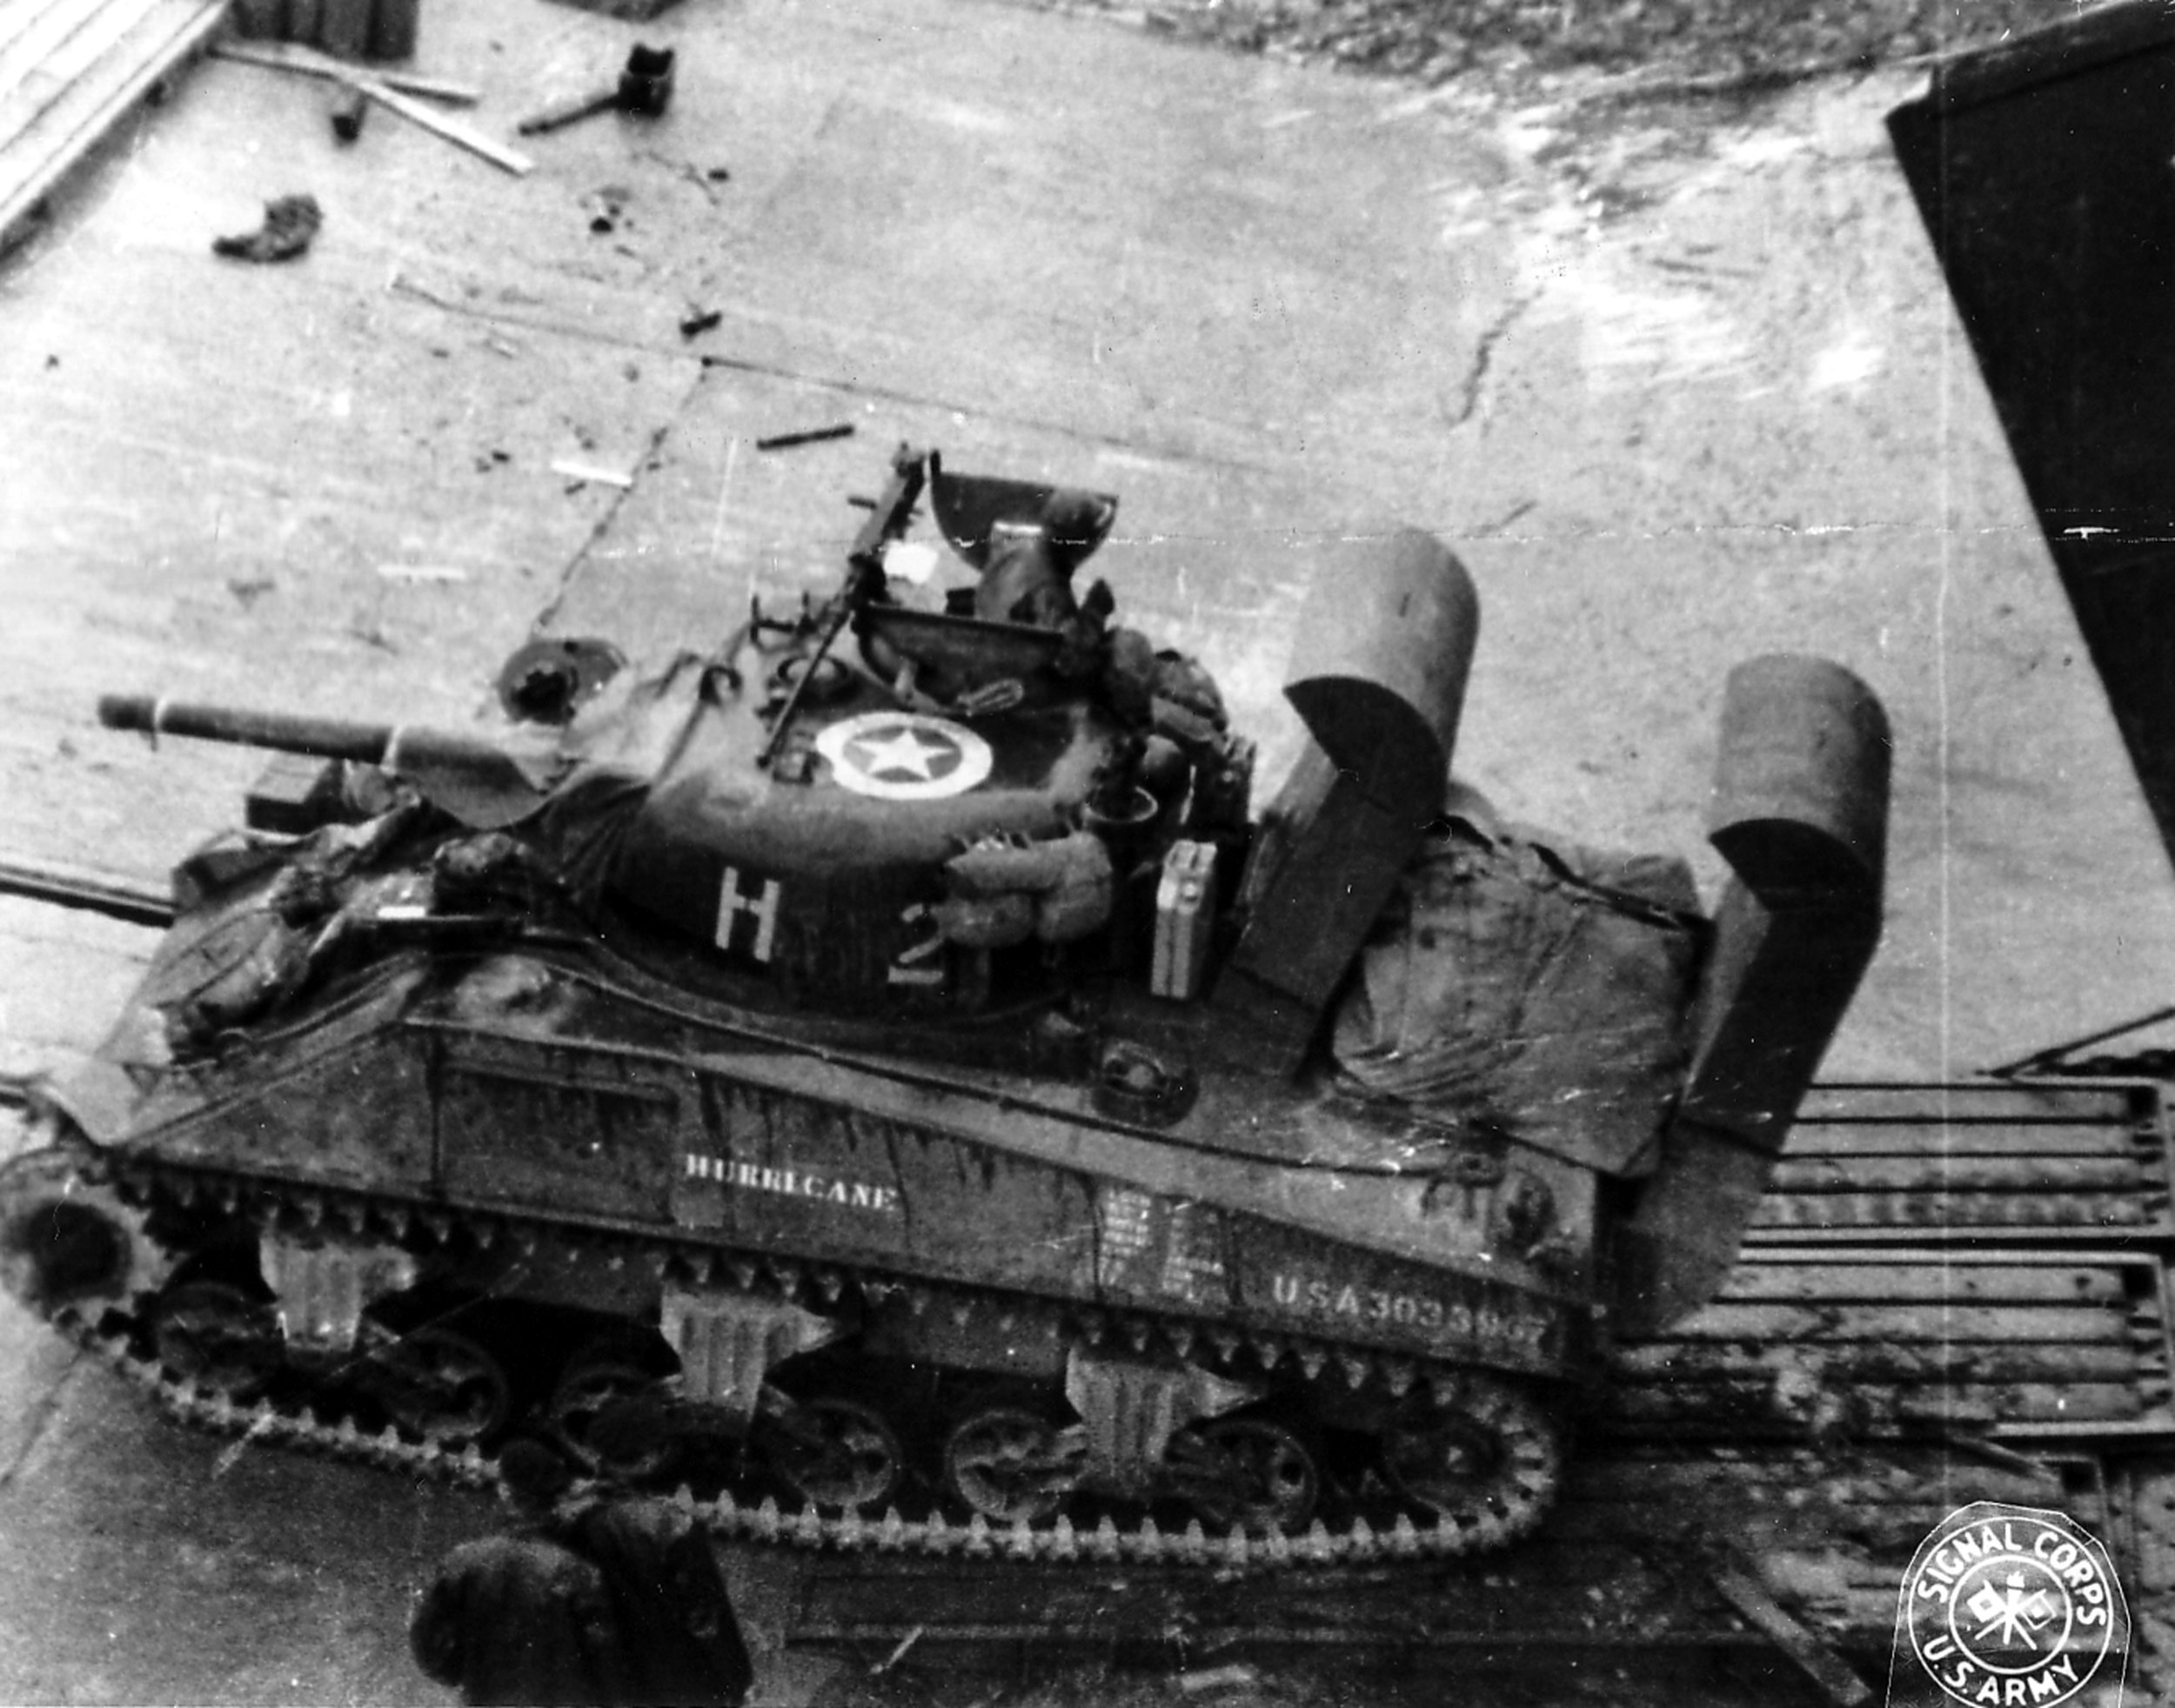 Top view of a Wading Gear Sherman